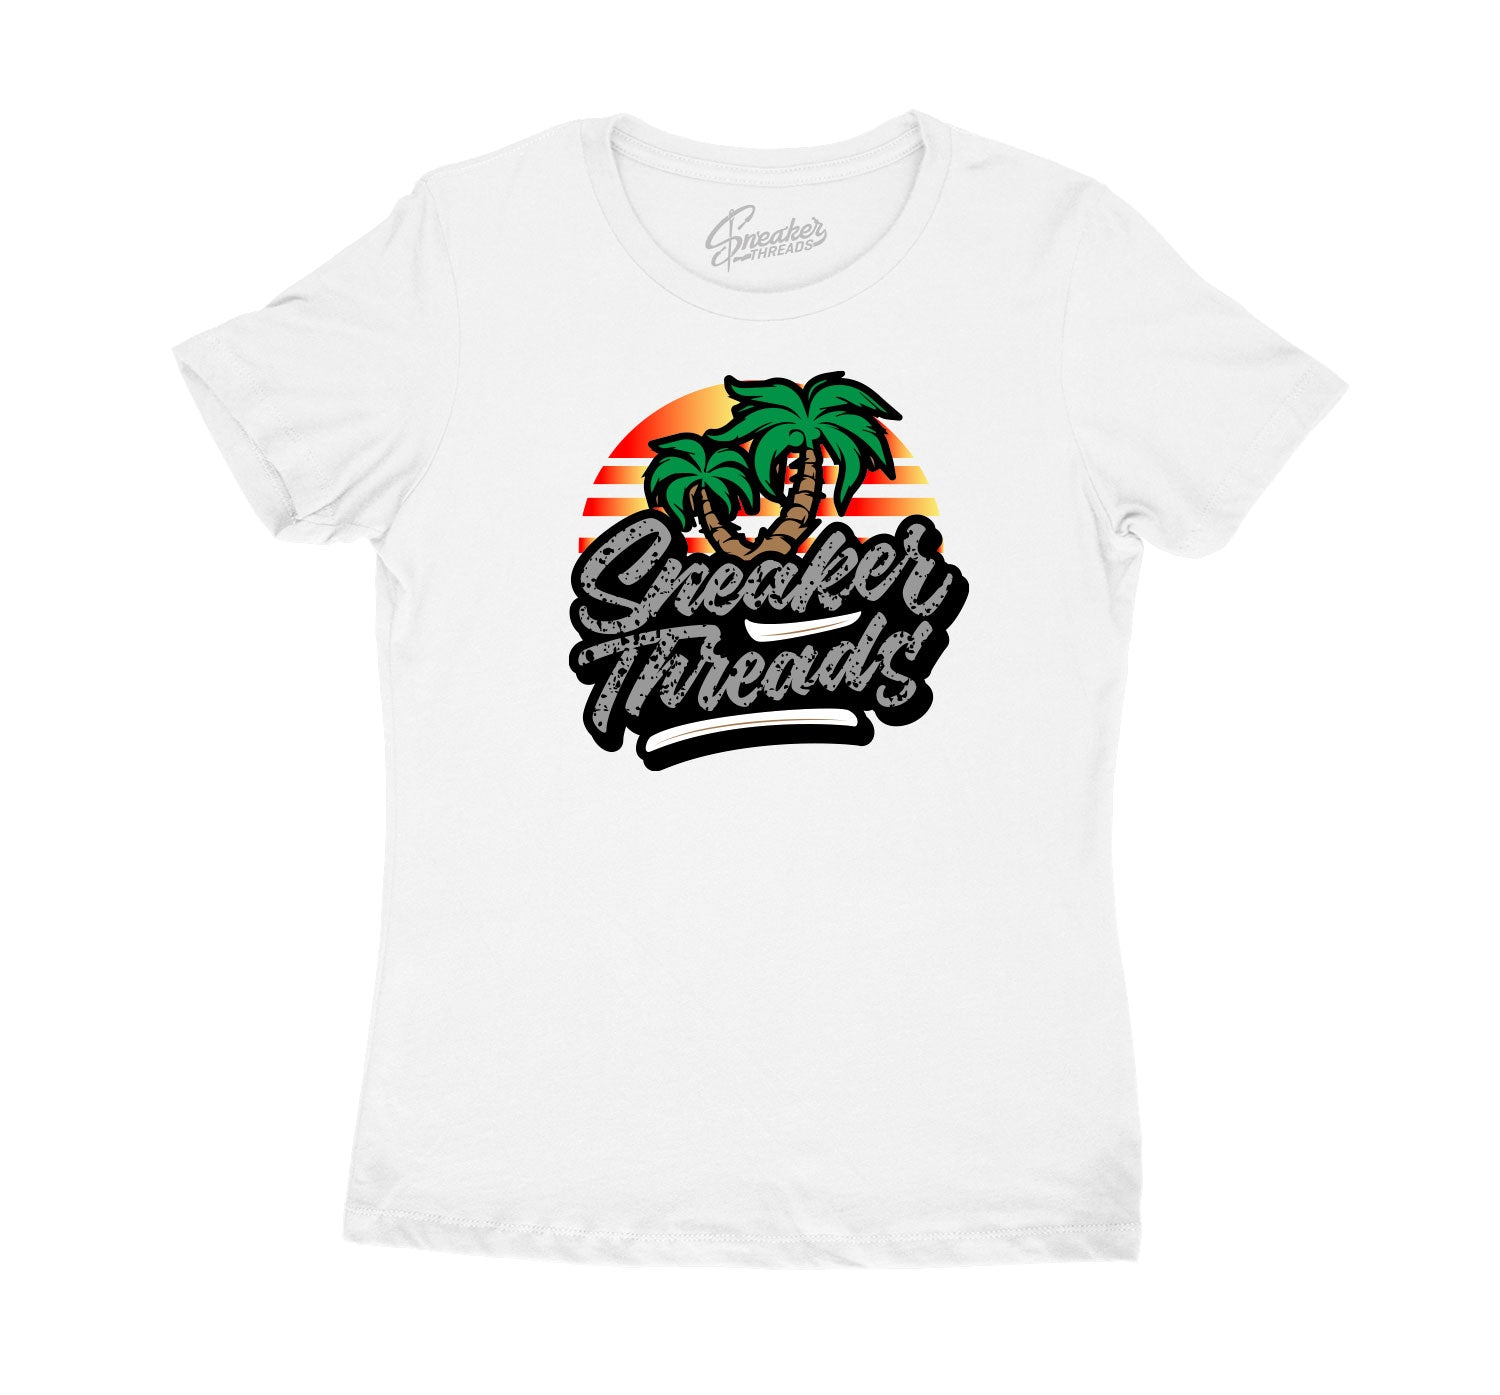 Rasta Jordan 4 sneaker collection matching with kids shirt collection